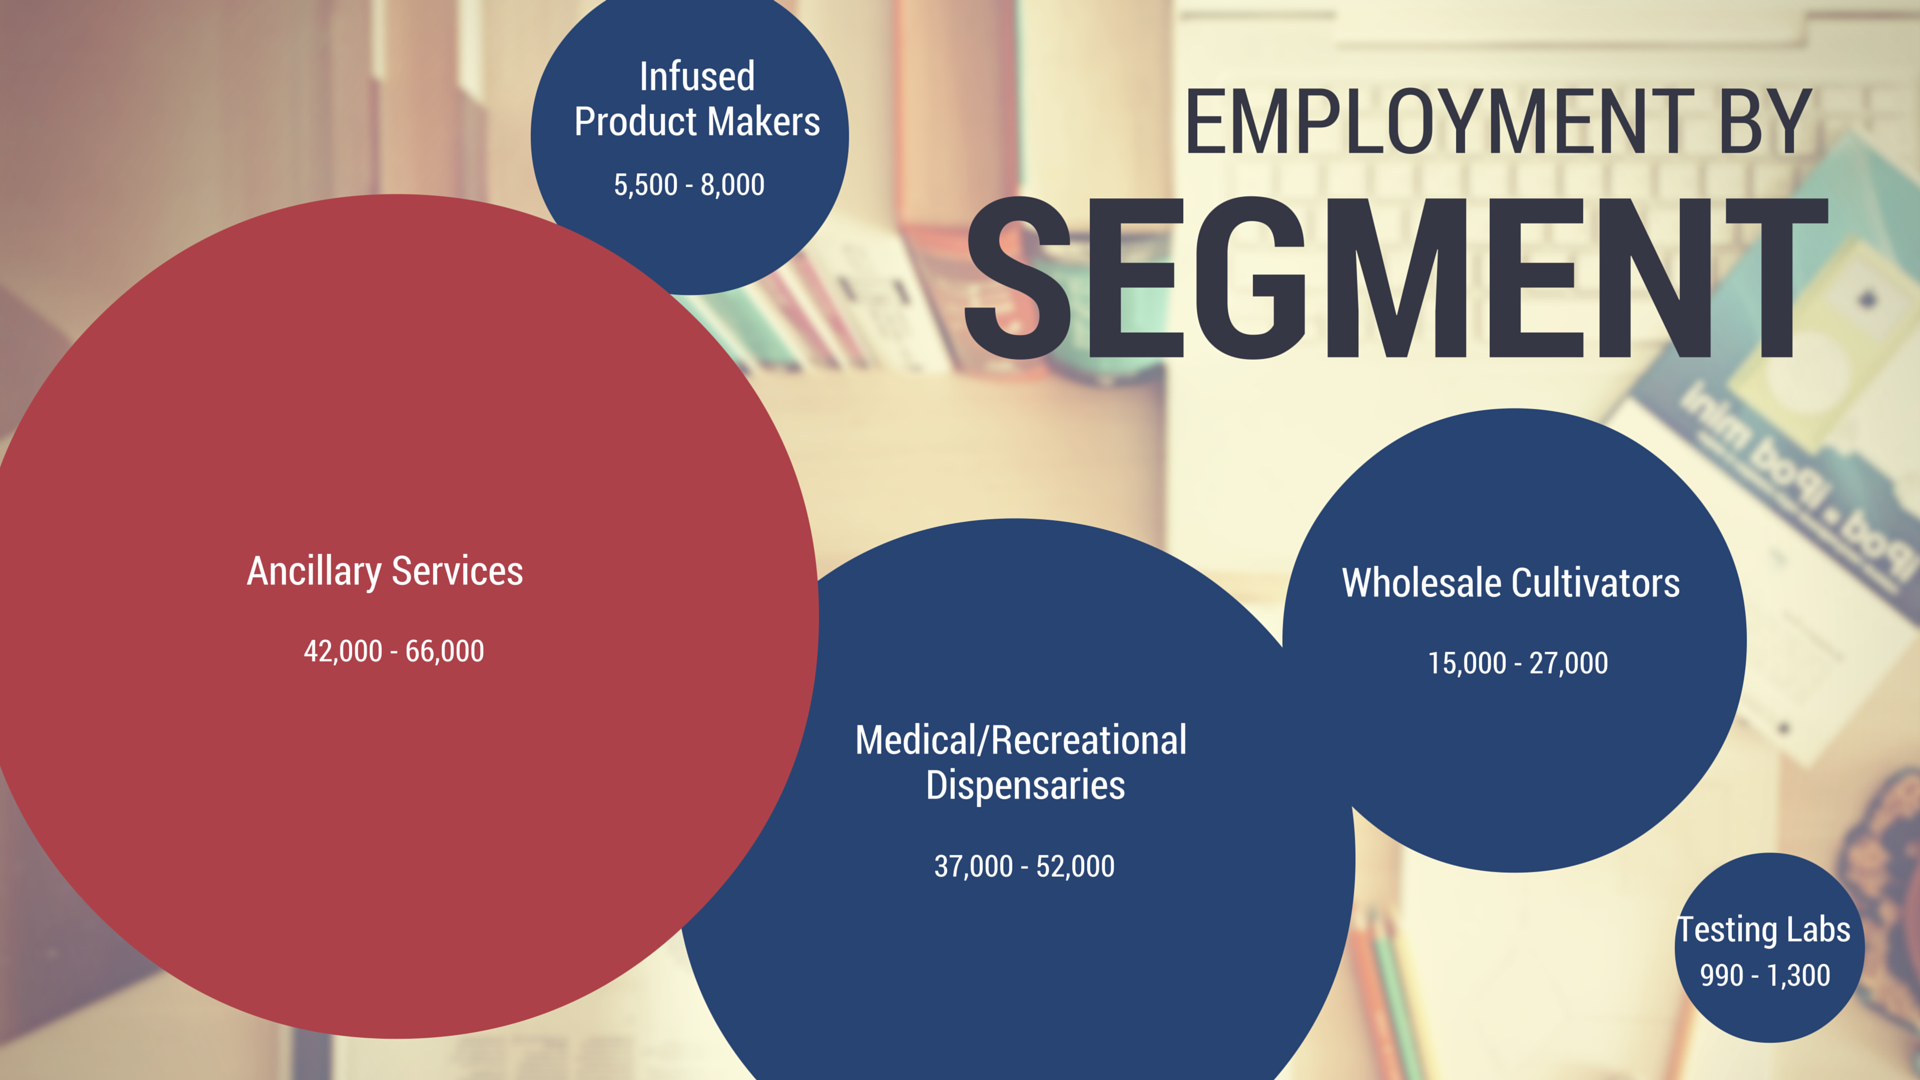 cannabis employment stats by segment